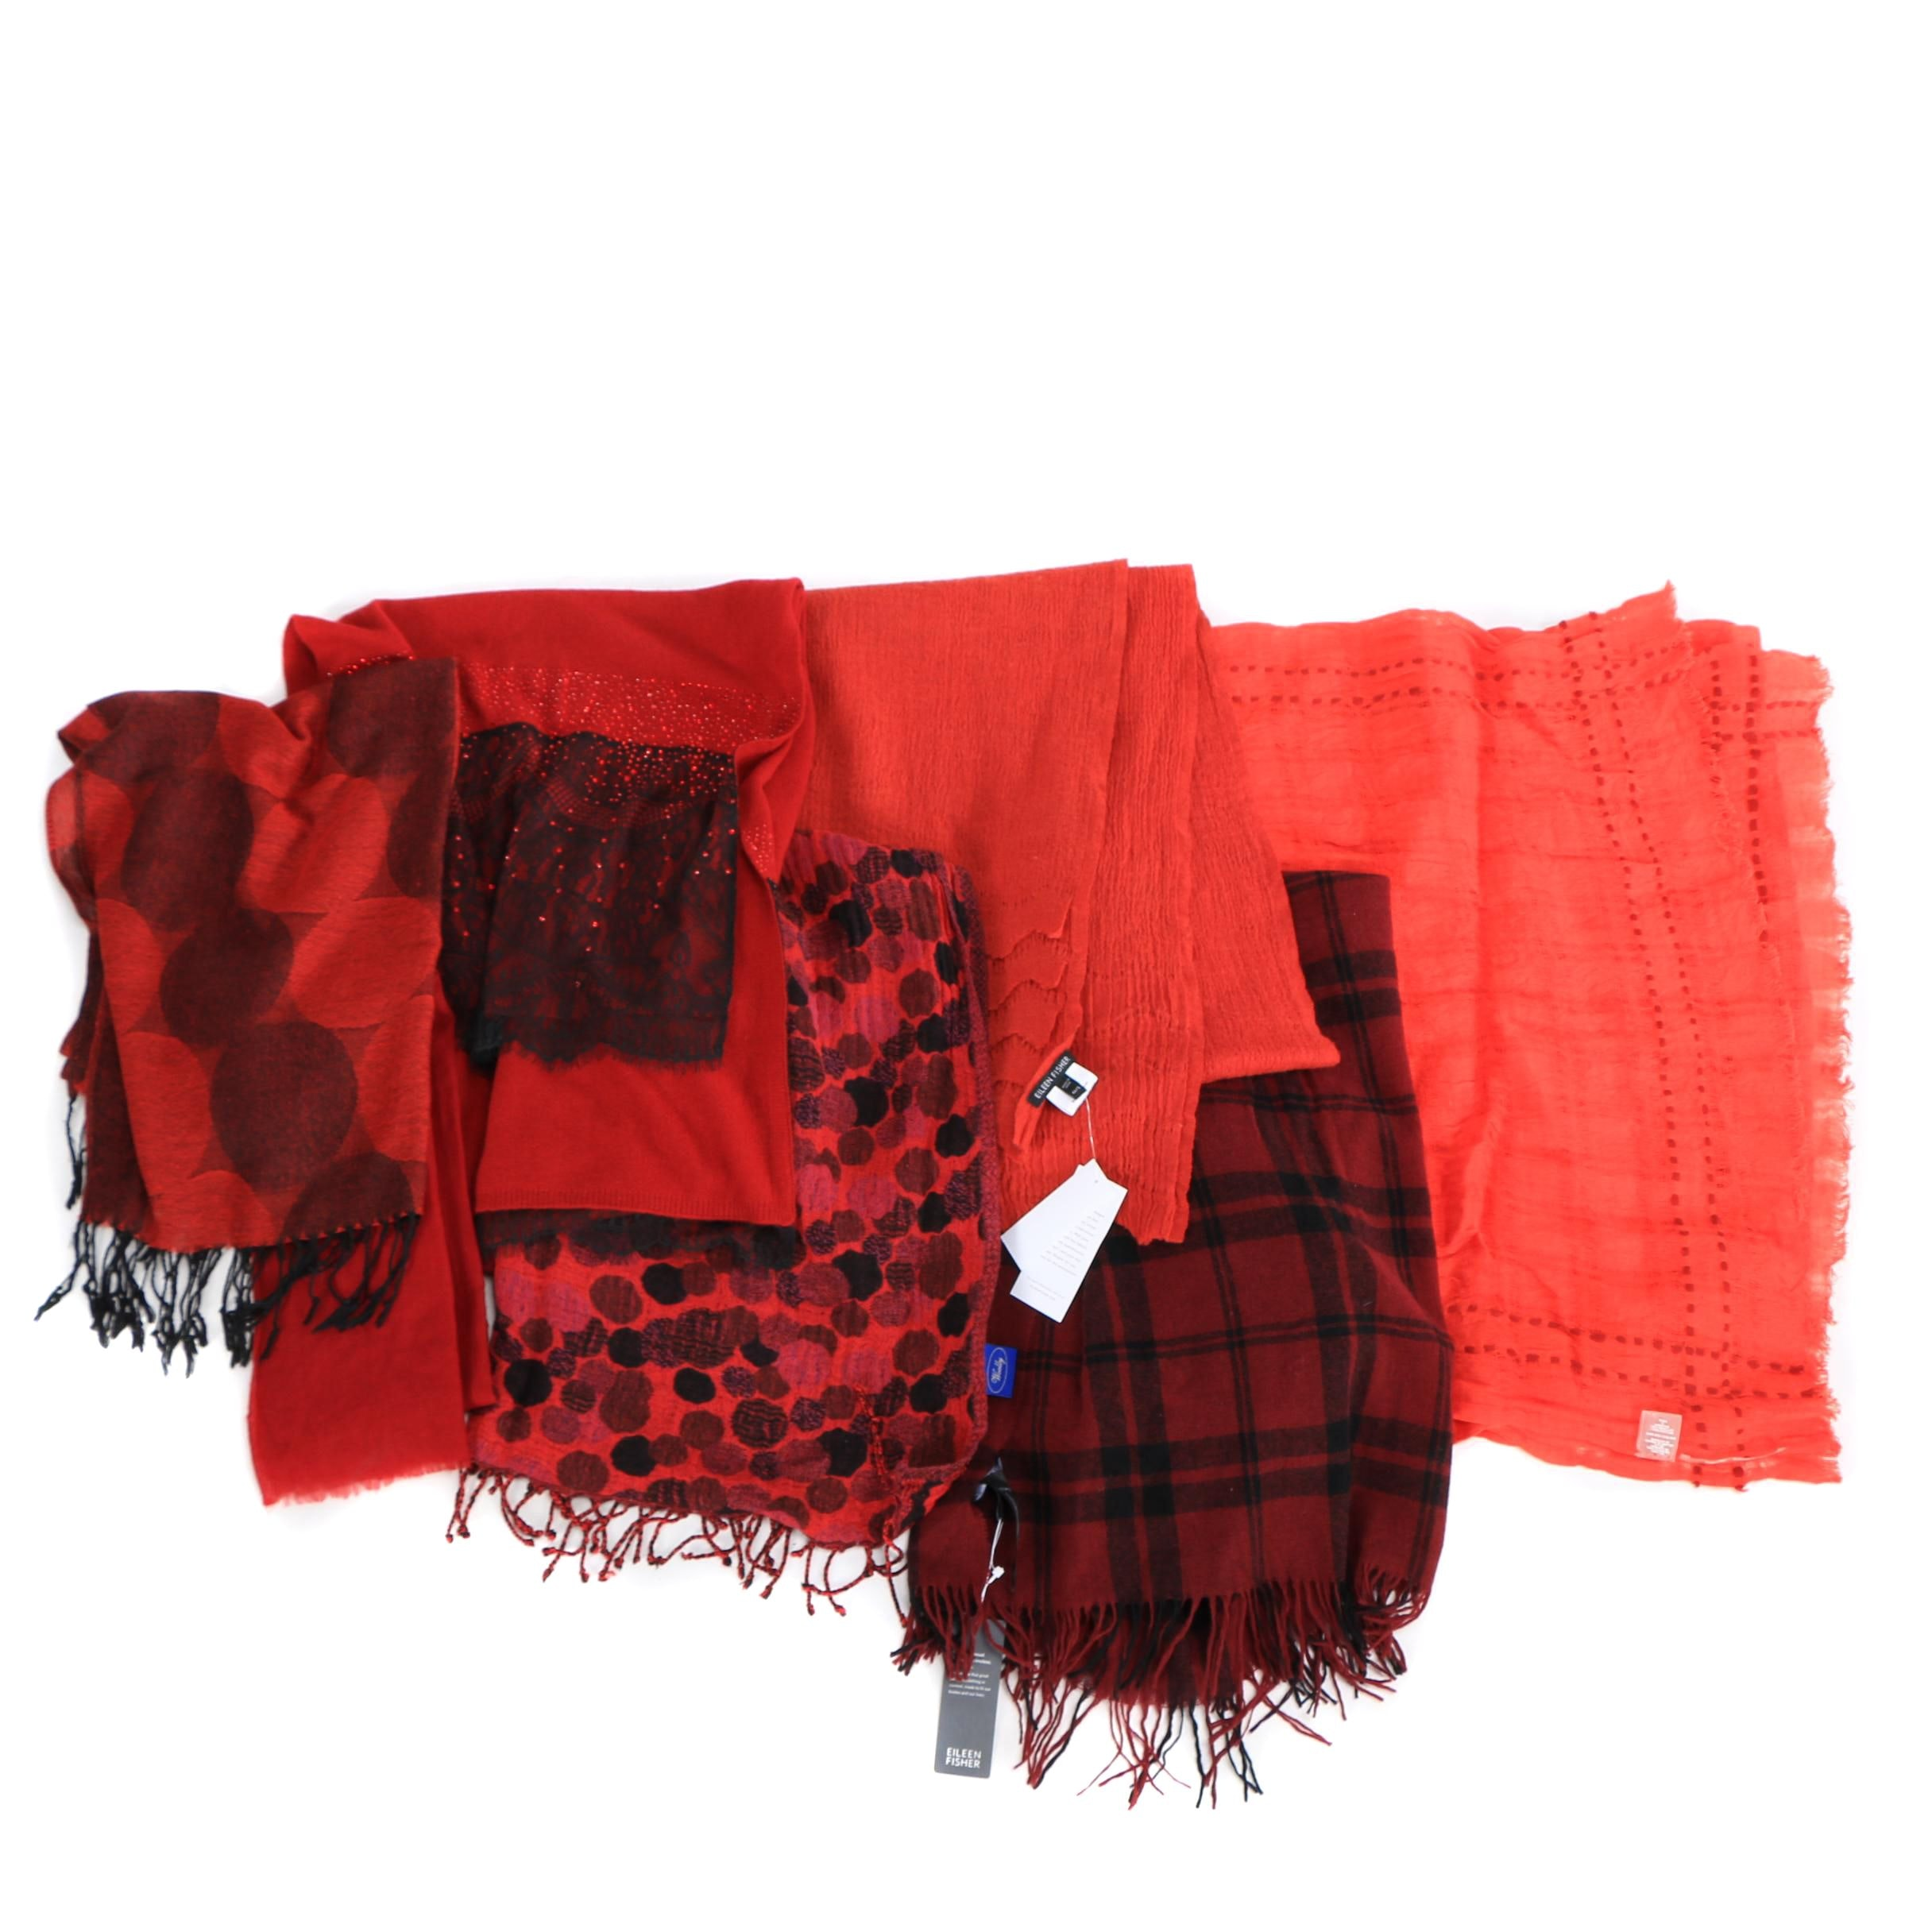 Eileen Fisher, RH and Pashmina Scarves